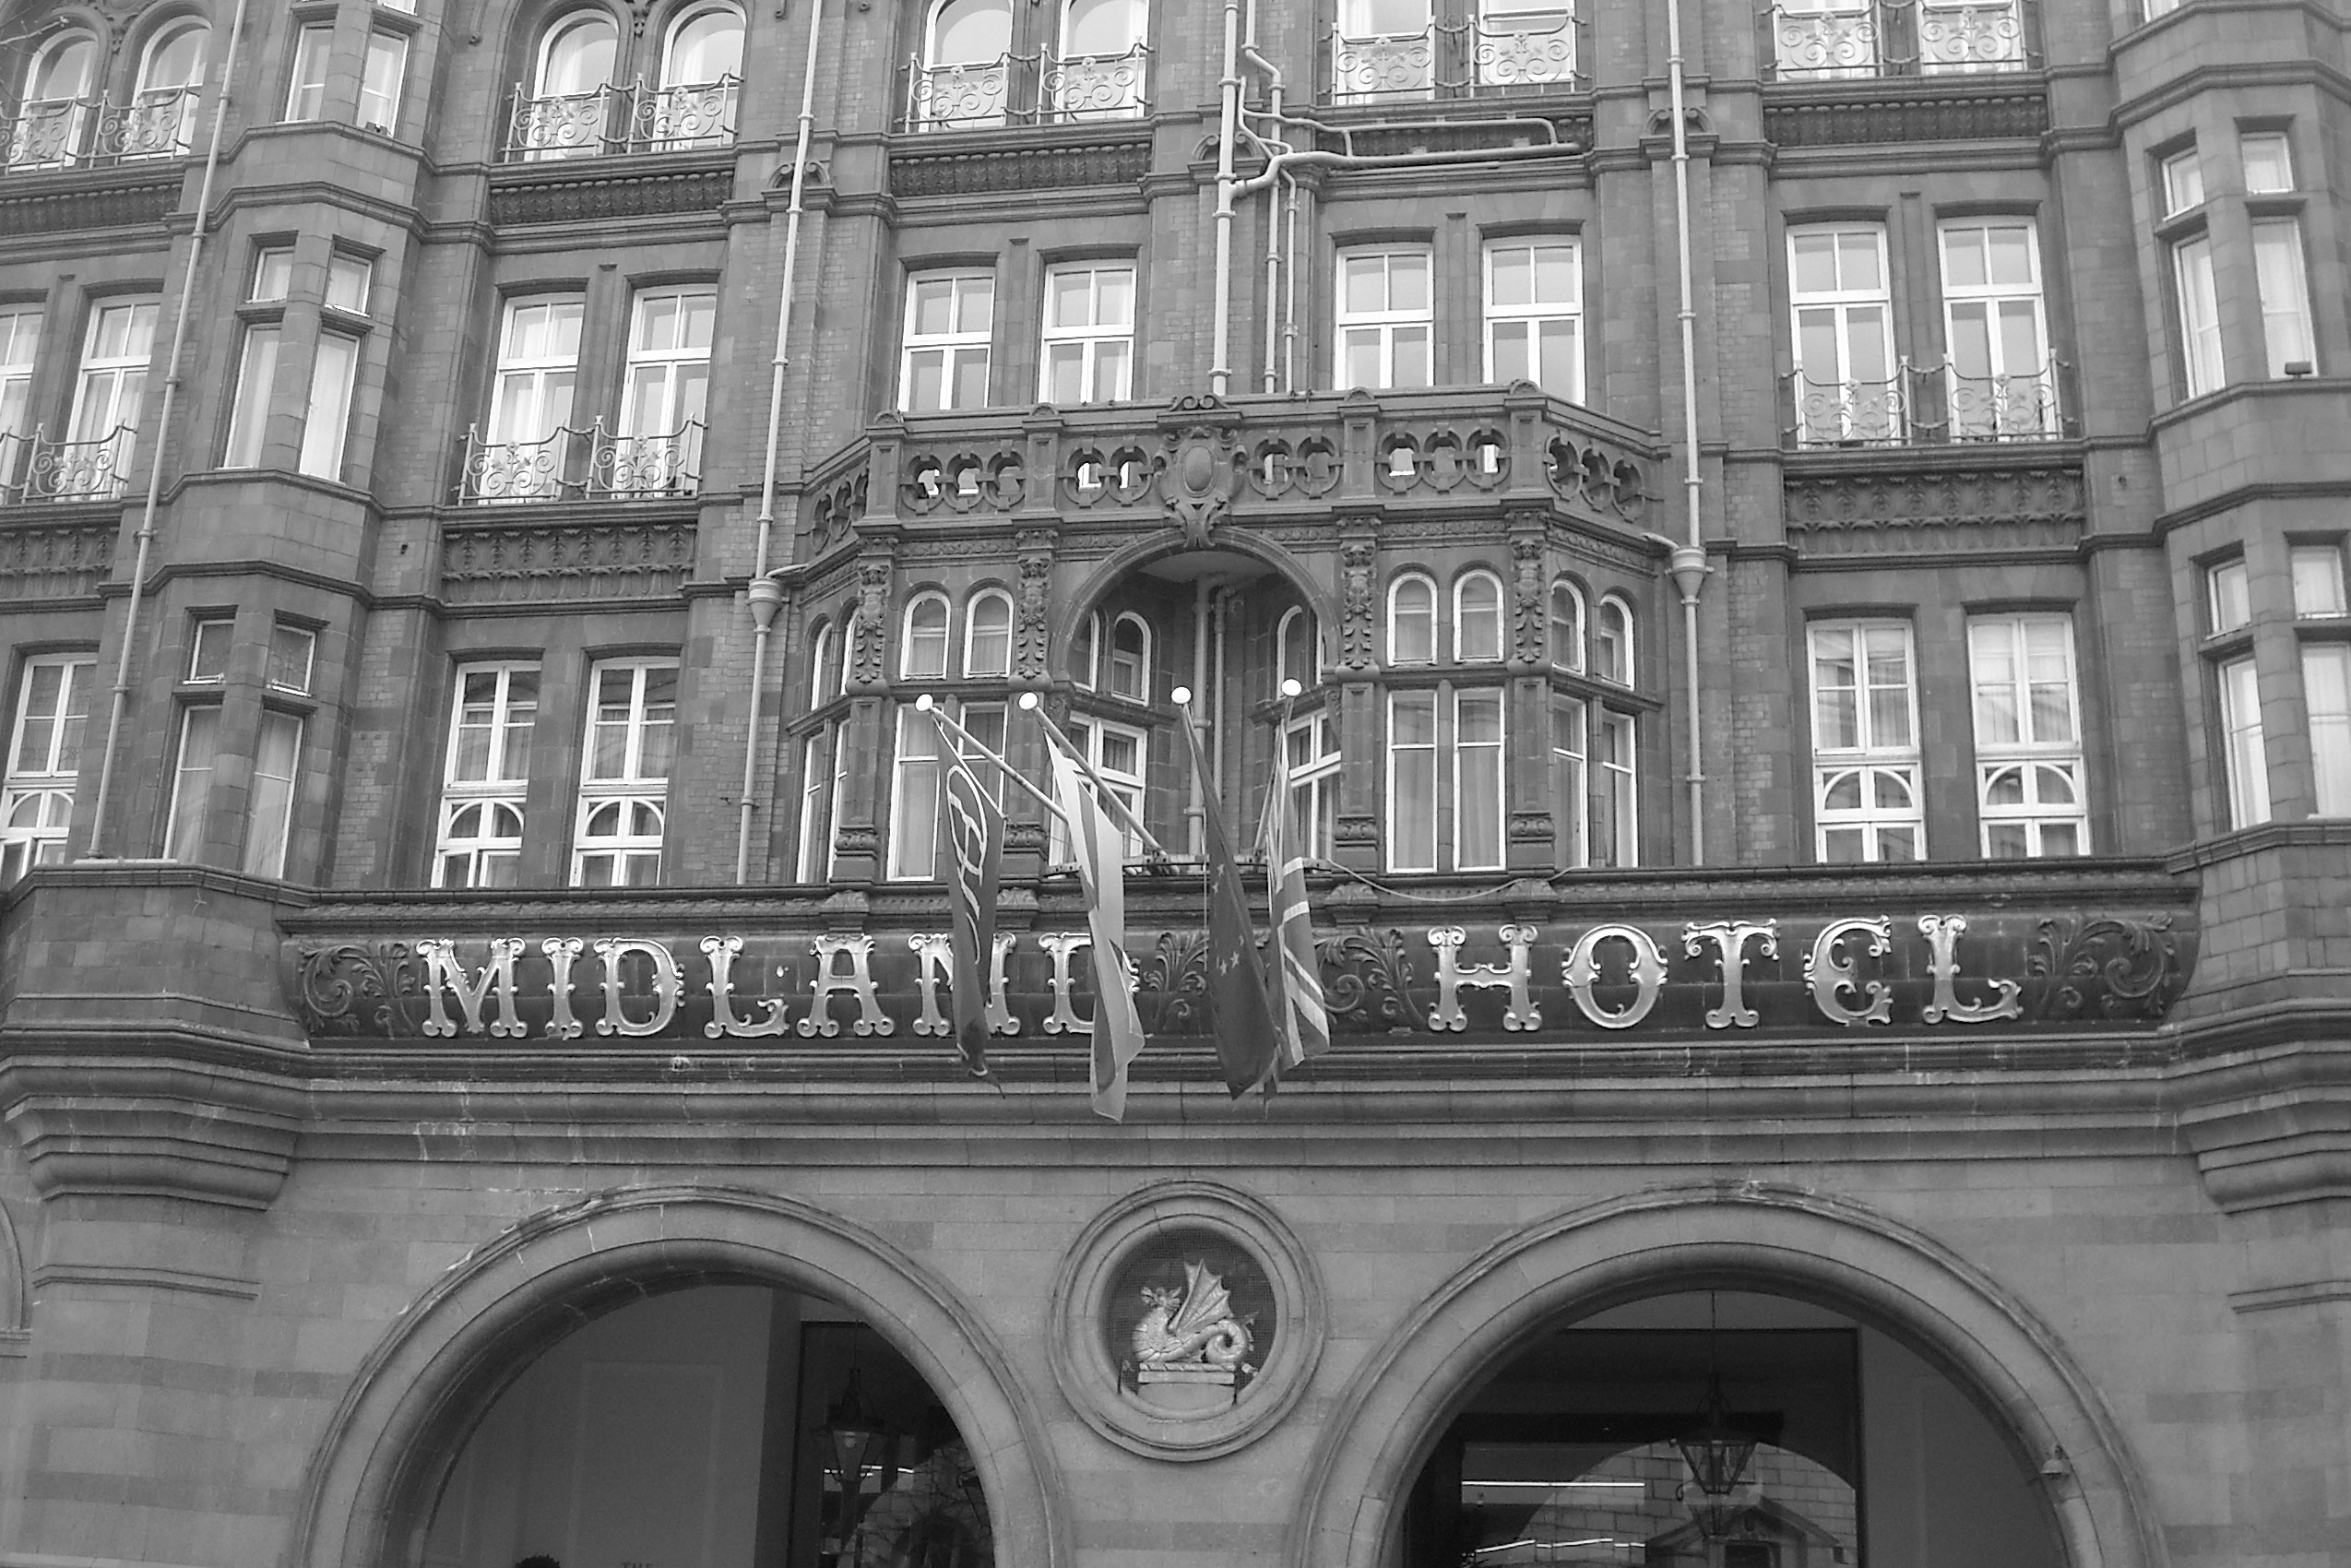 the midland hotel in london essay Reviews of hotels in the midlands from the good hotel guide, the uk's leading independent accommodation site written and edited by trusted experts.